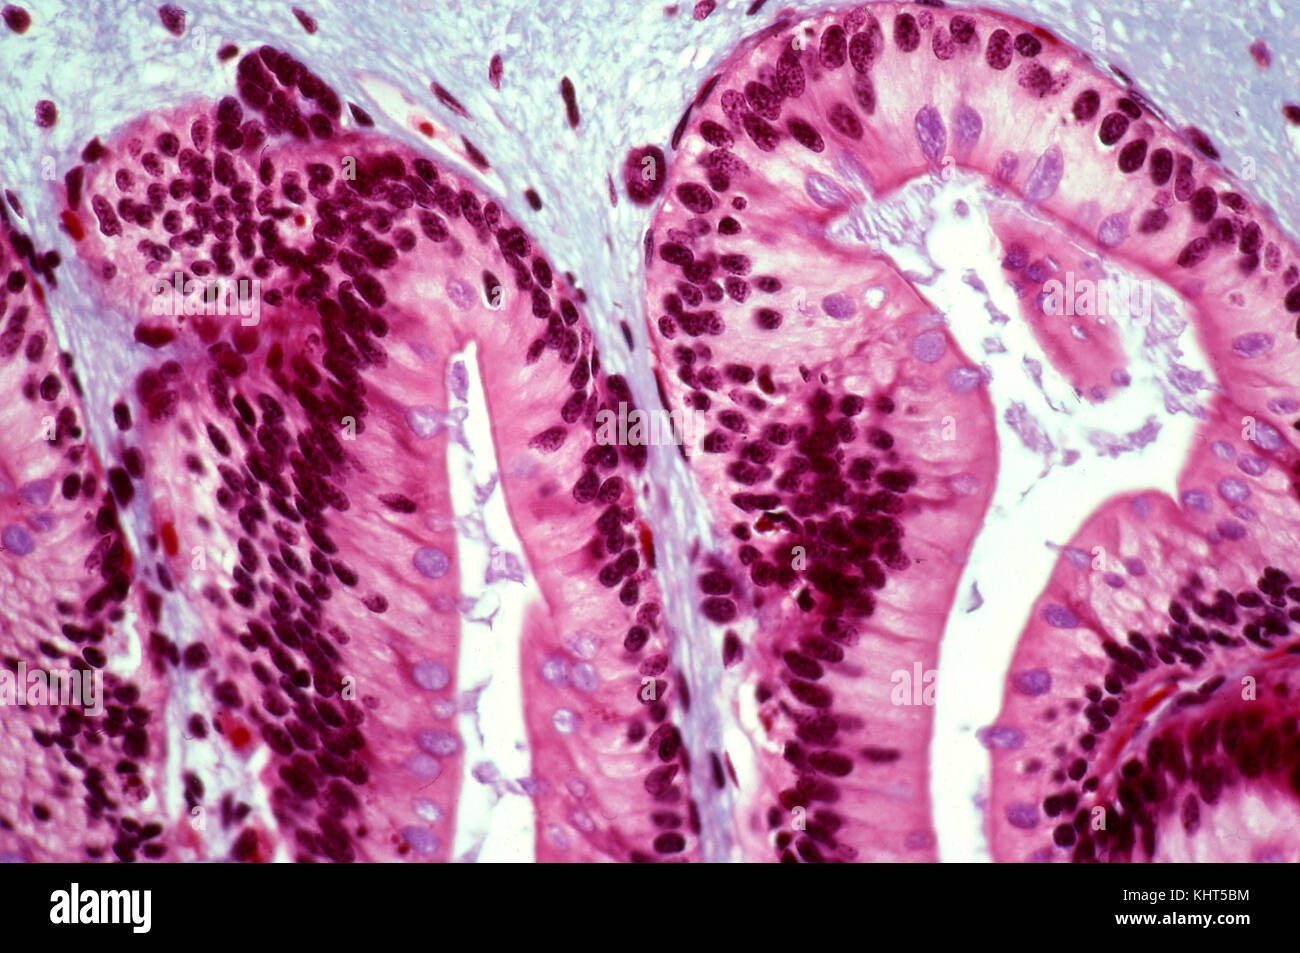 euglena diagram labeled 400 magnification 1998 dodge durango infinity stereo wiring 400x stock photos and images alamy